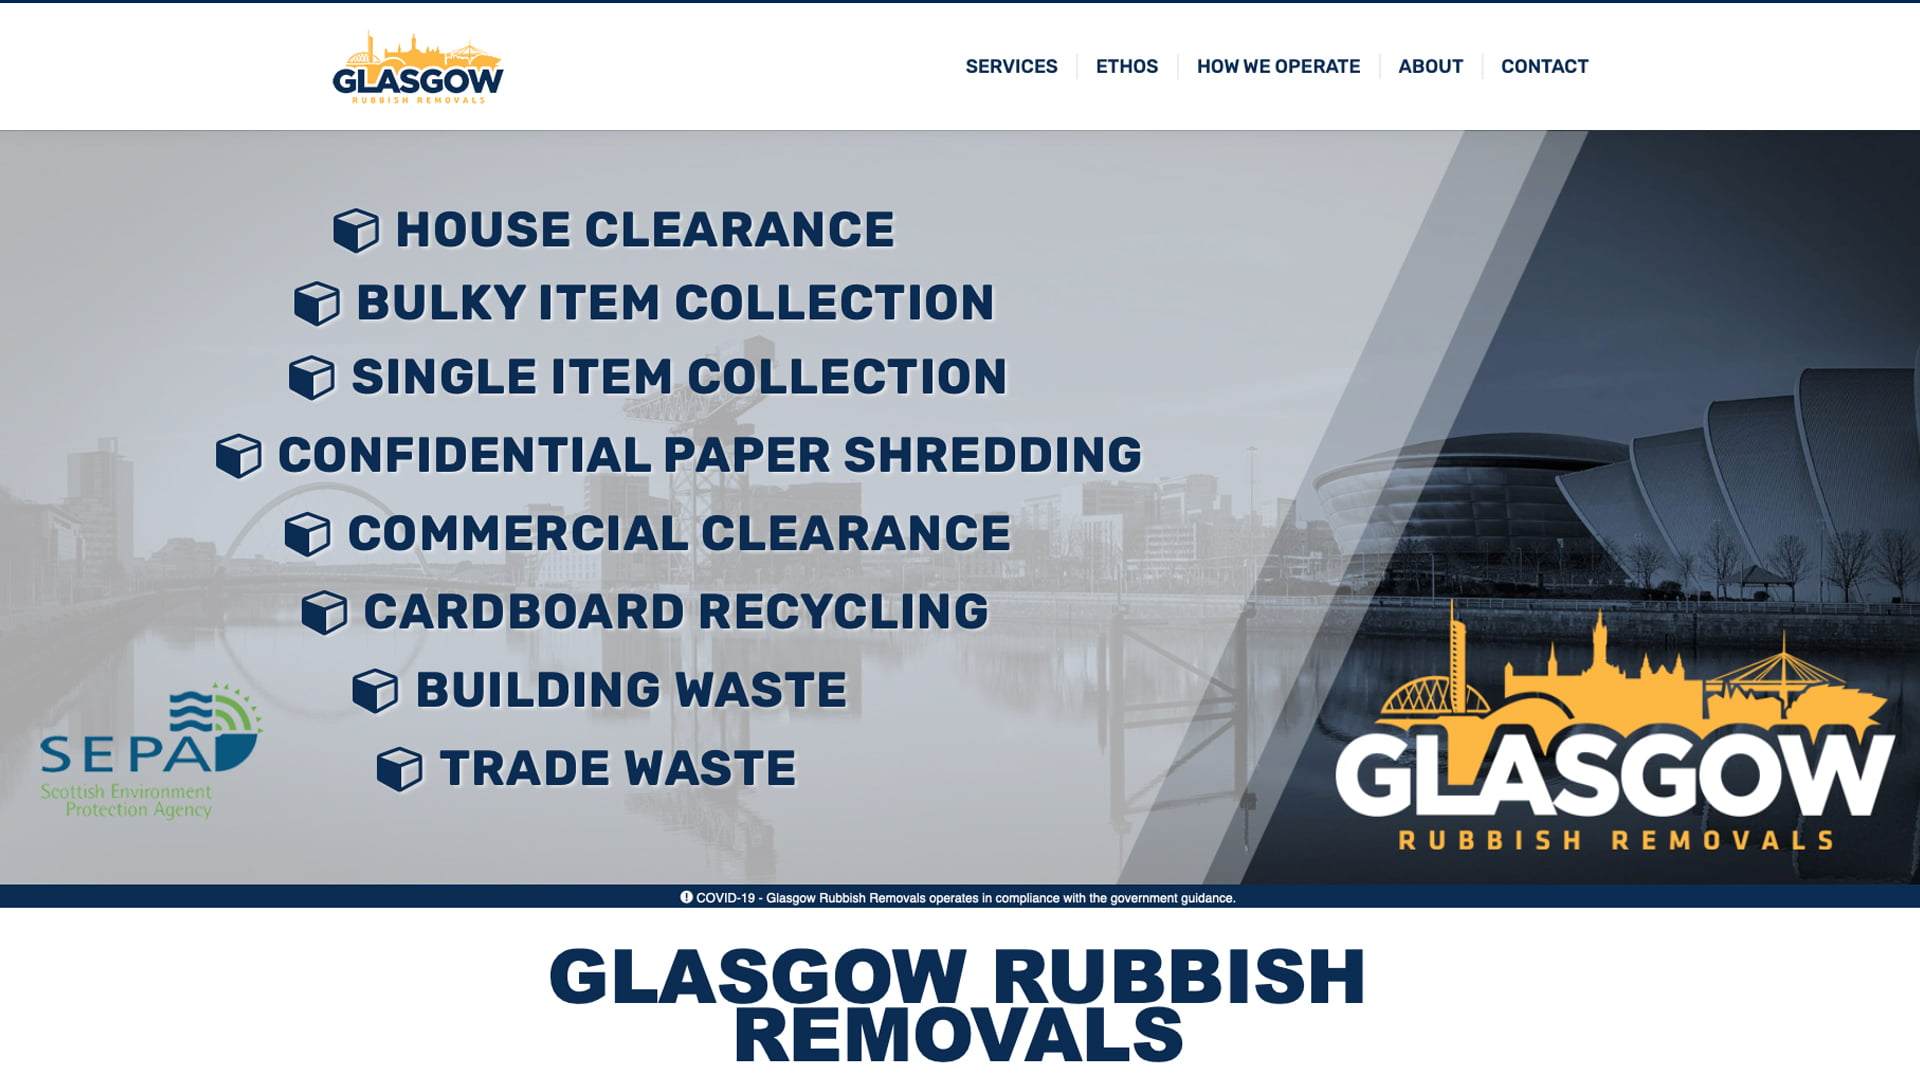 Glasgow Rubbish Removals